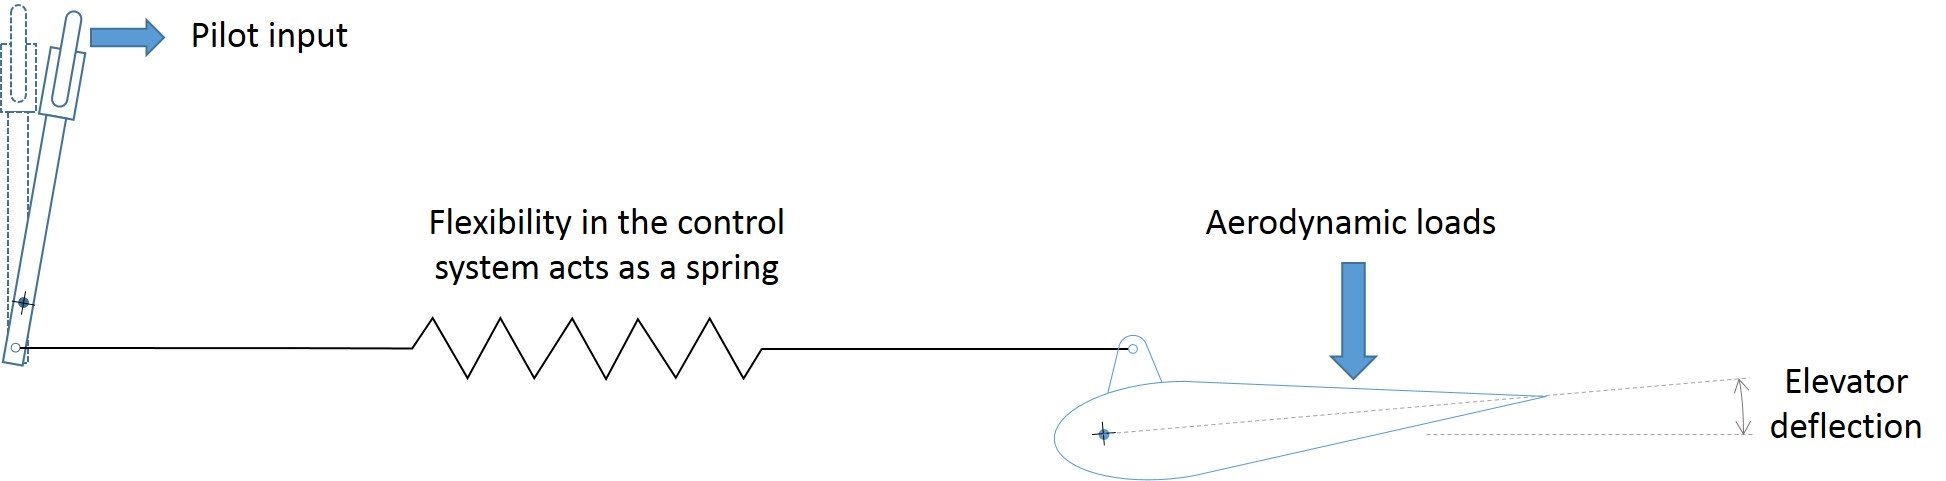 Figure 5: Simplified model of one pitch control system channel showing the generalised balance of loads in the system